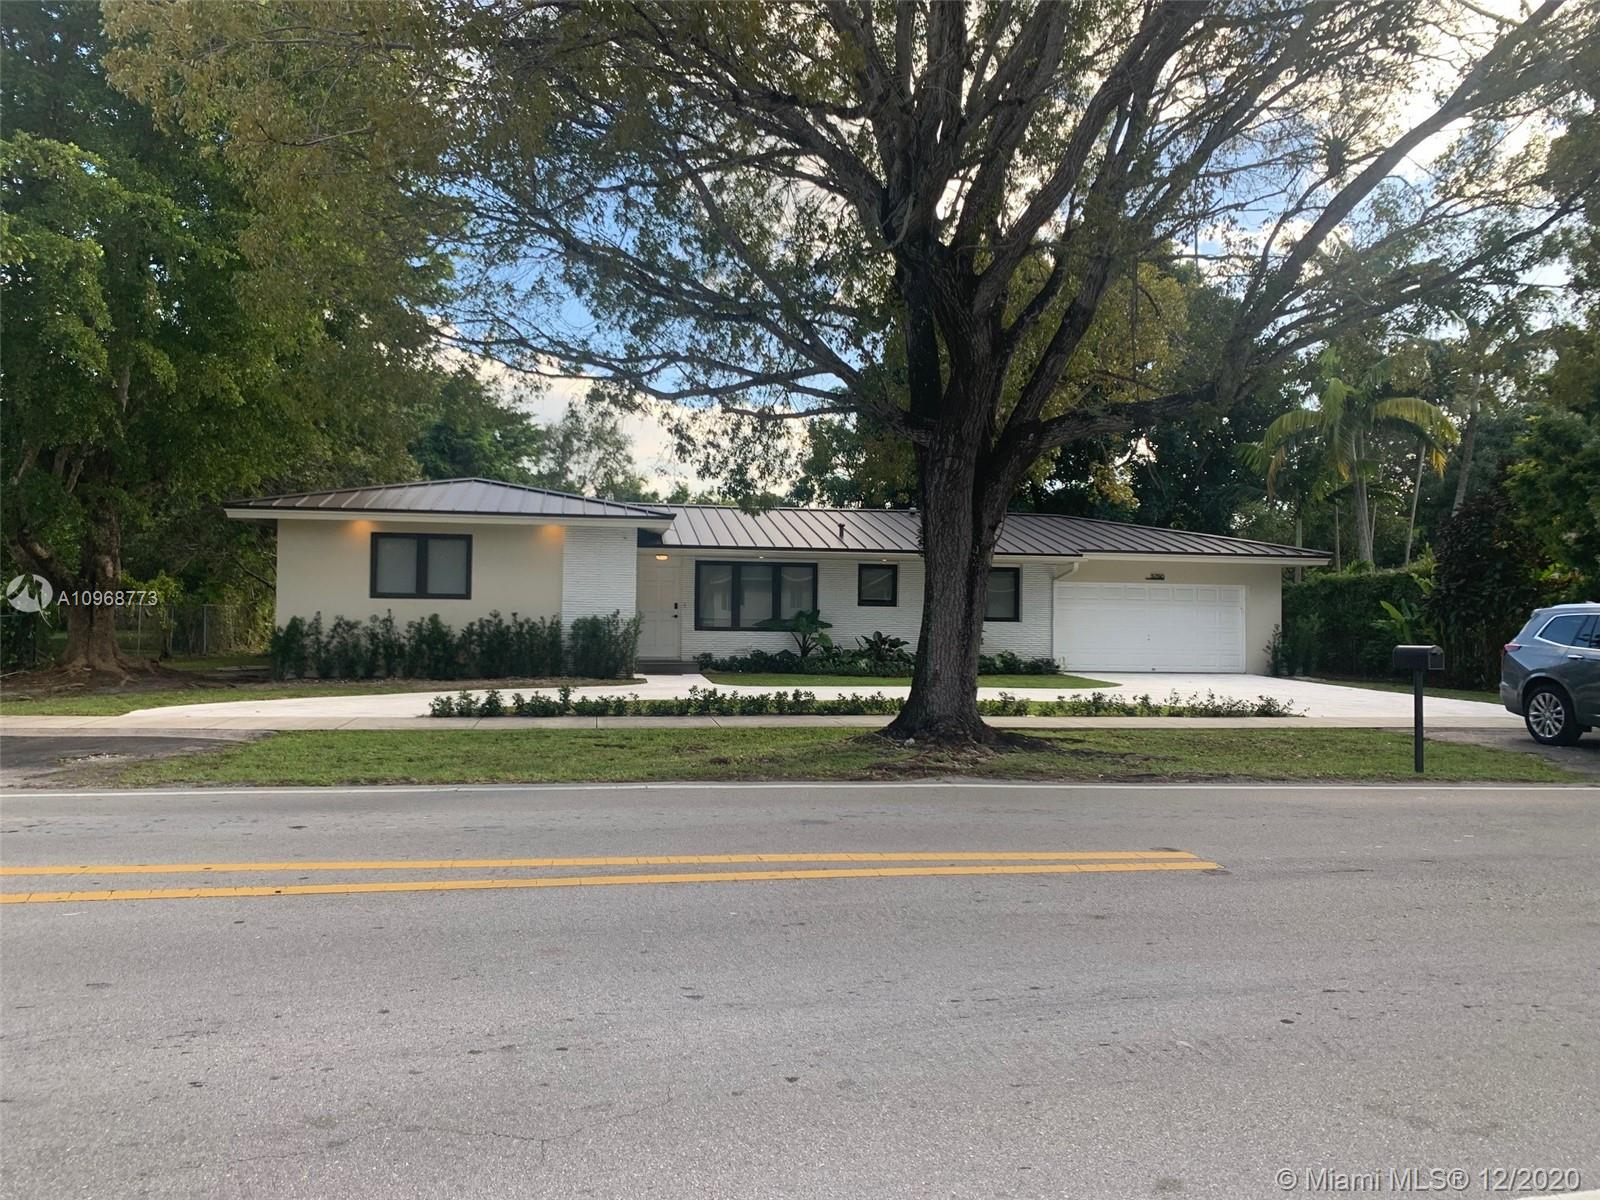 Lot 15,600 sq ft (Largest lot on the block ) House: 3057 sq ft, Private Access to Dison park, 2.5 Car Garage, 4 Bed, 3 Full bath, Impact Windows, Blackout shades, Metal Roof, New 4 Ton Ac, Original Terrazzo Floors & Oak Wood, Remodeled Completely, Bosch Kitchen Appliances, Plenty of Room for Pool or addition, New Sub panel Prepared Prepped for a double laundry, A list schools District, Prime Location& Neighborhood. Weekends appointments only with proof of Financial Qualification's.The square footage of lot in this property is not correct on public records. It will show corrected on 2021.